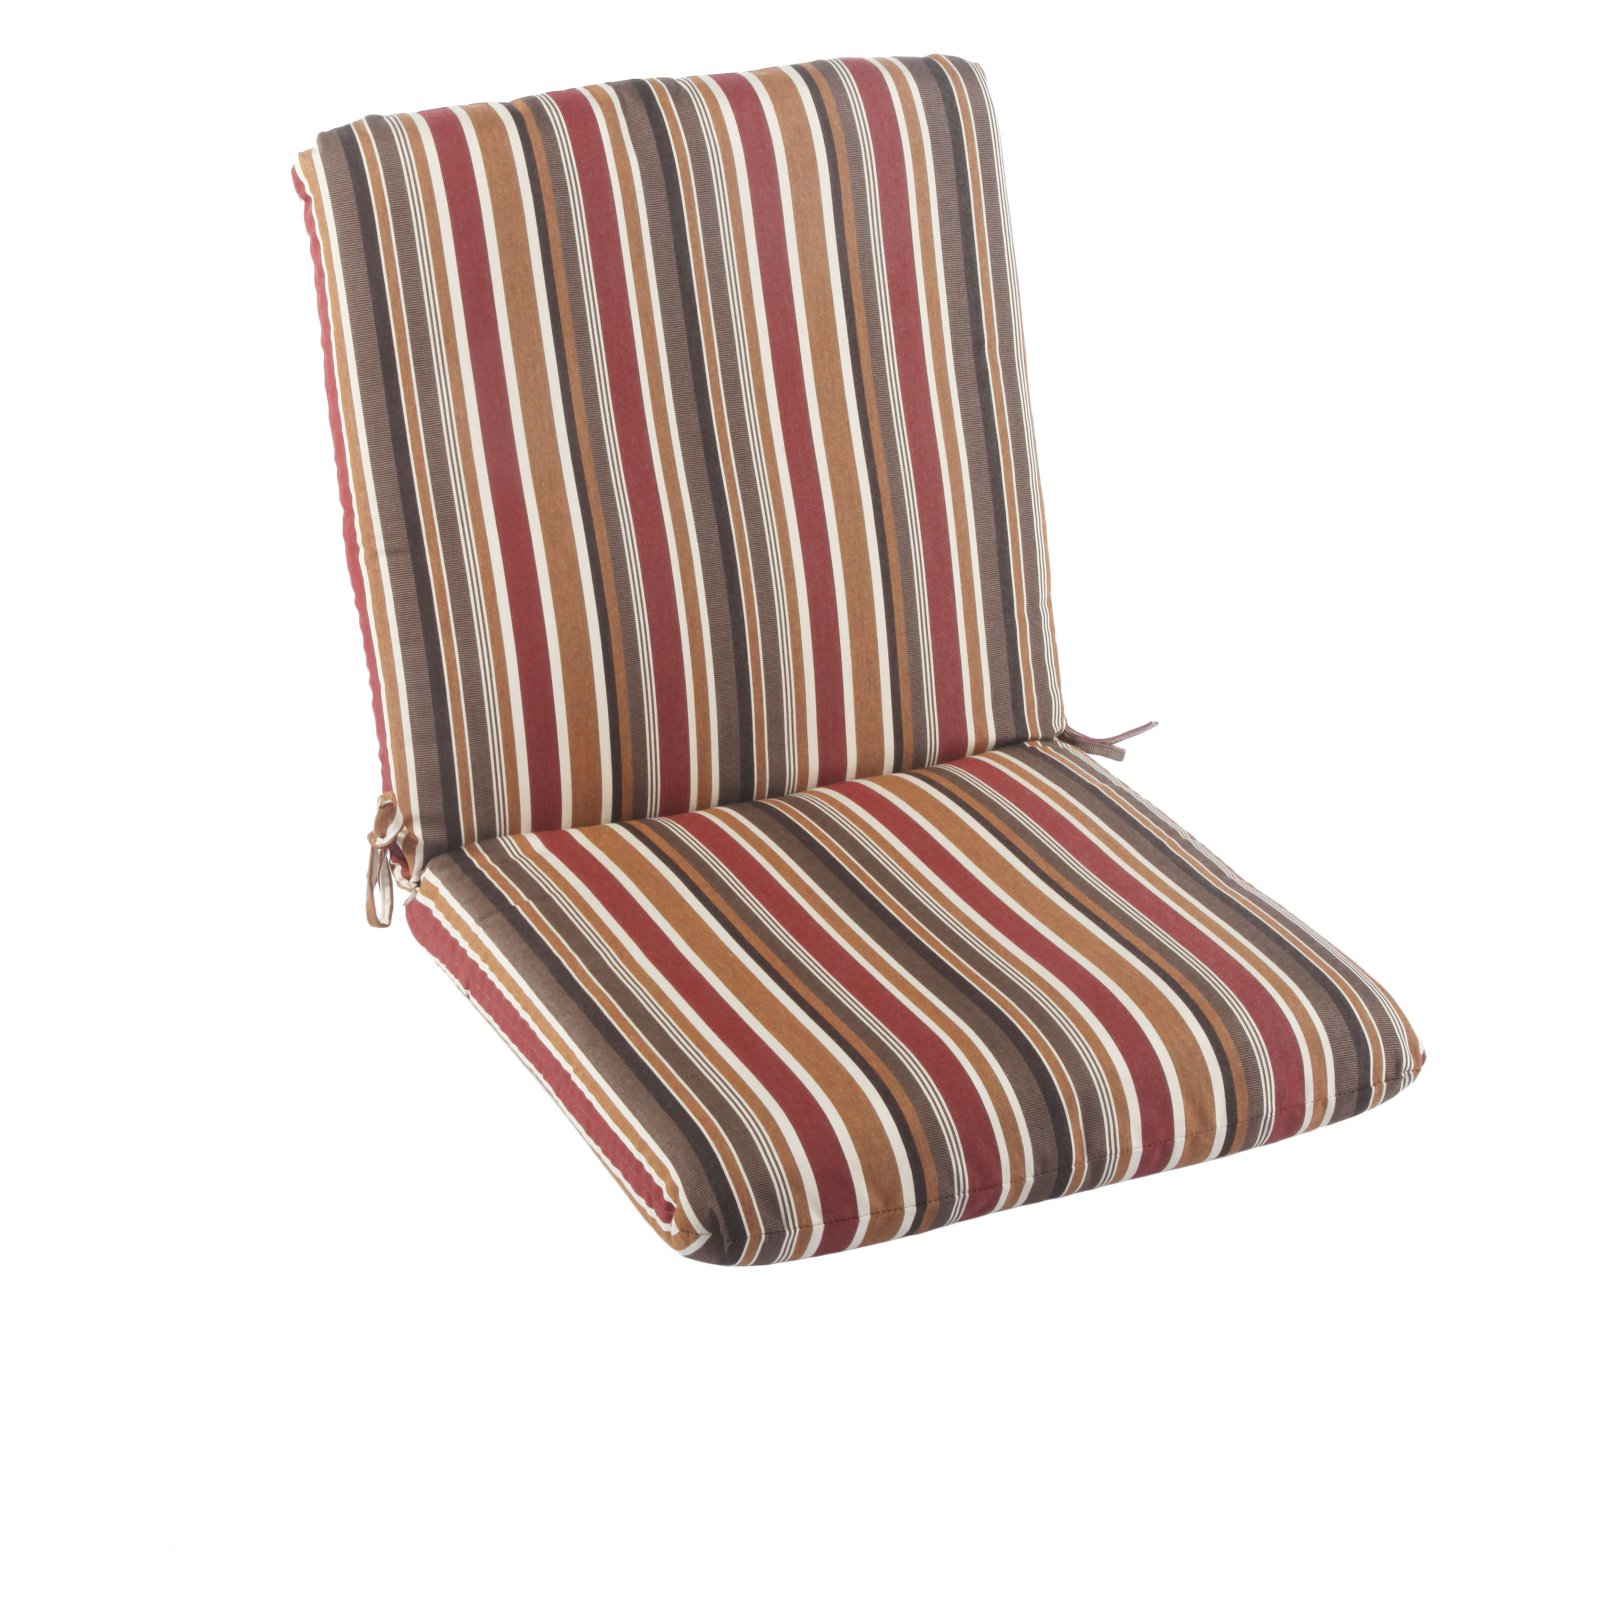 Casual Cushion Sunbrella Brannon Redwood Striped Hinged Outdoor Club Chair Cushion In 2019 Products Dining Chair Cushions Cushions Chair Cushions